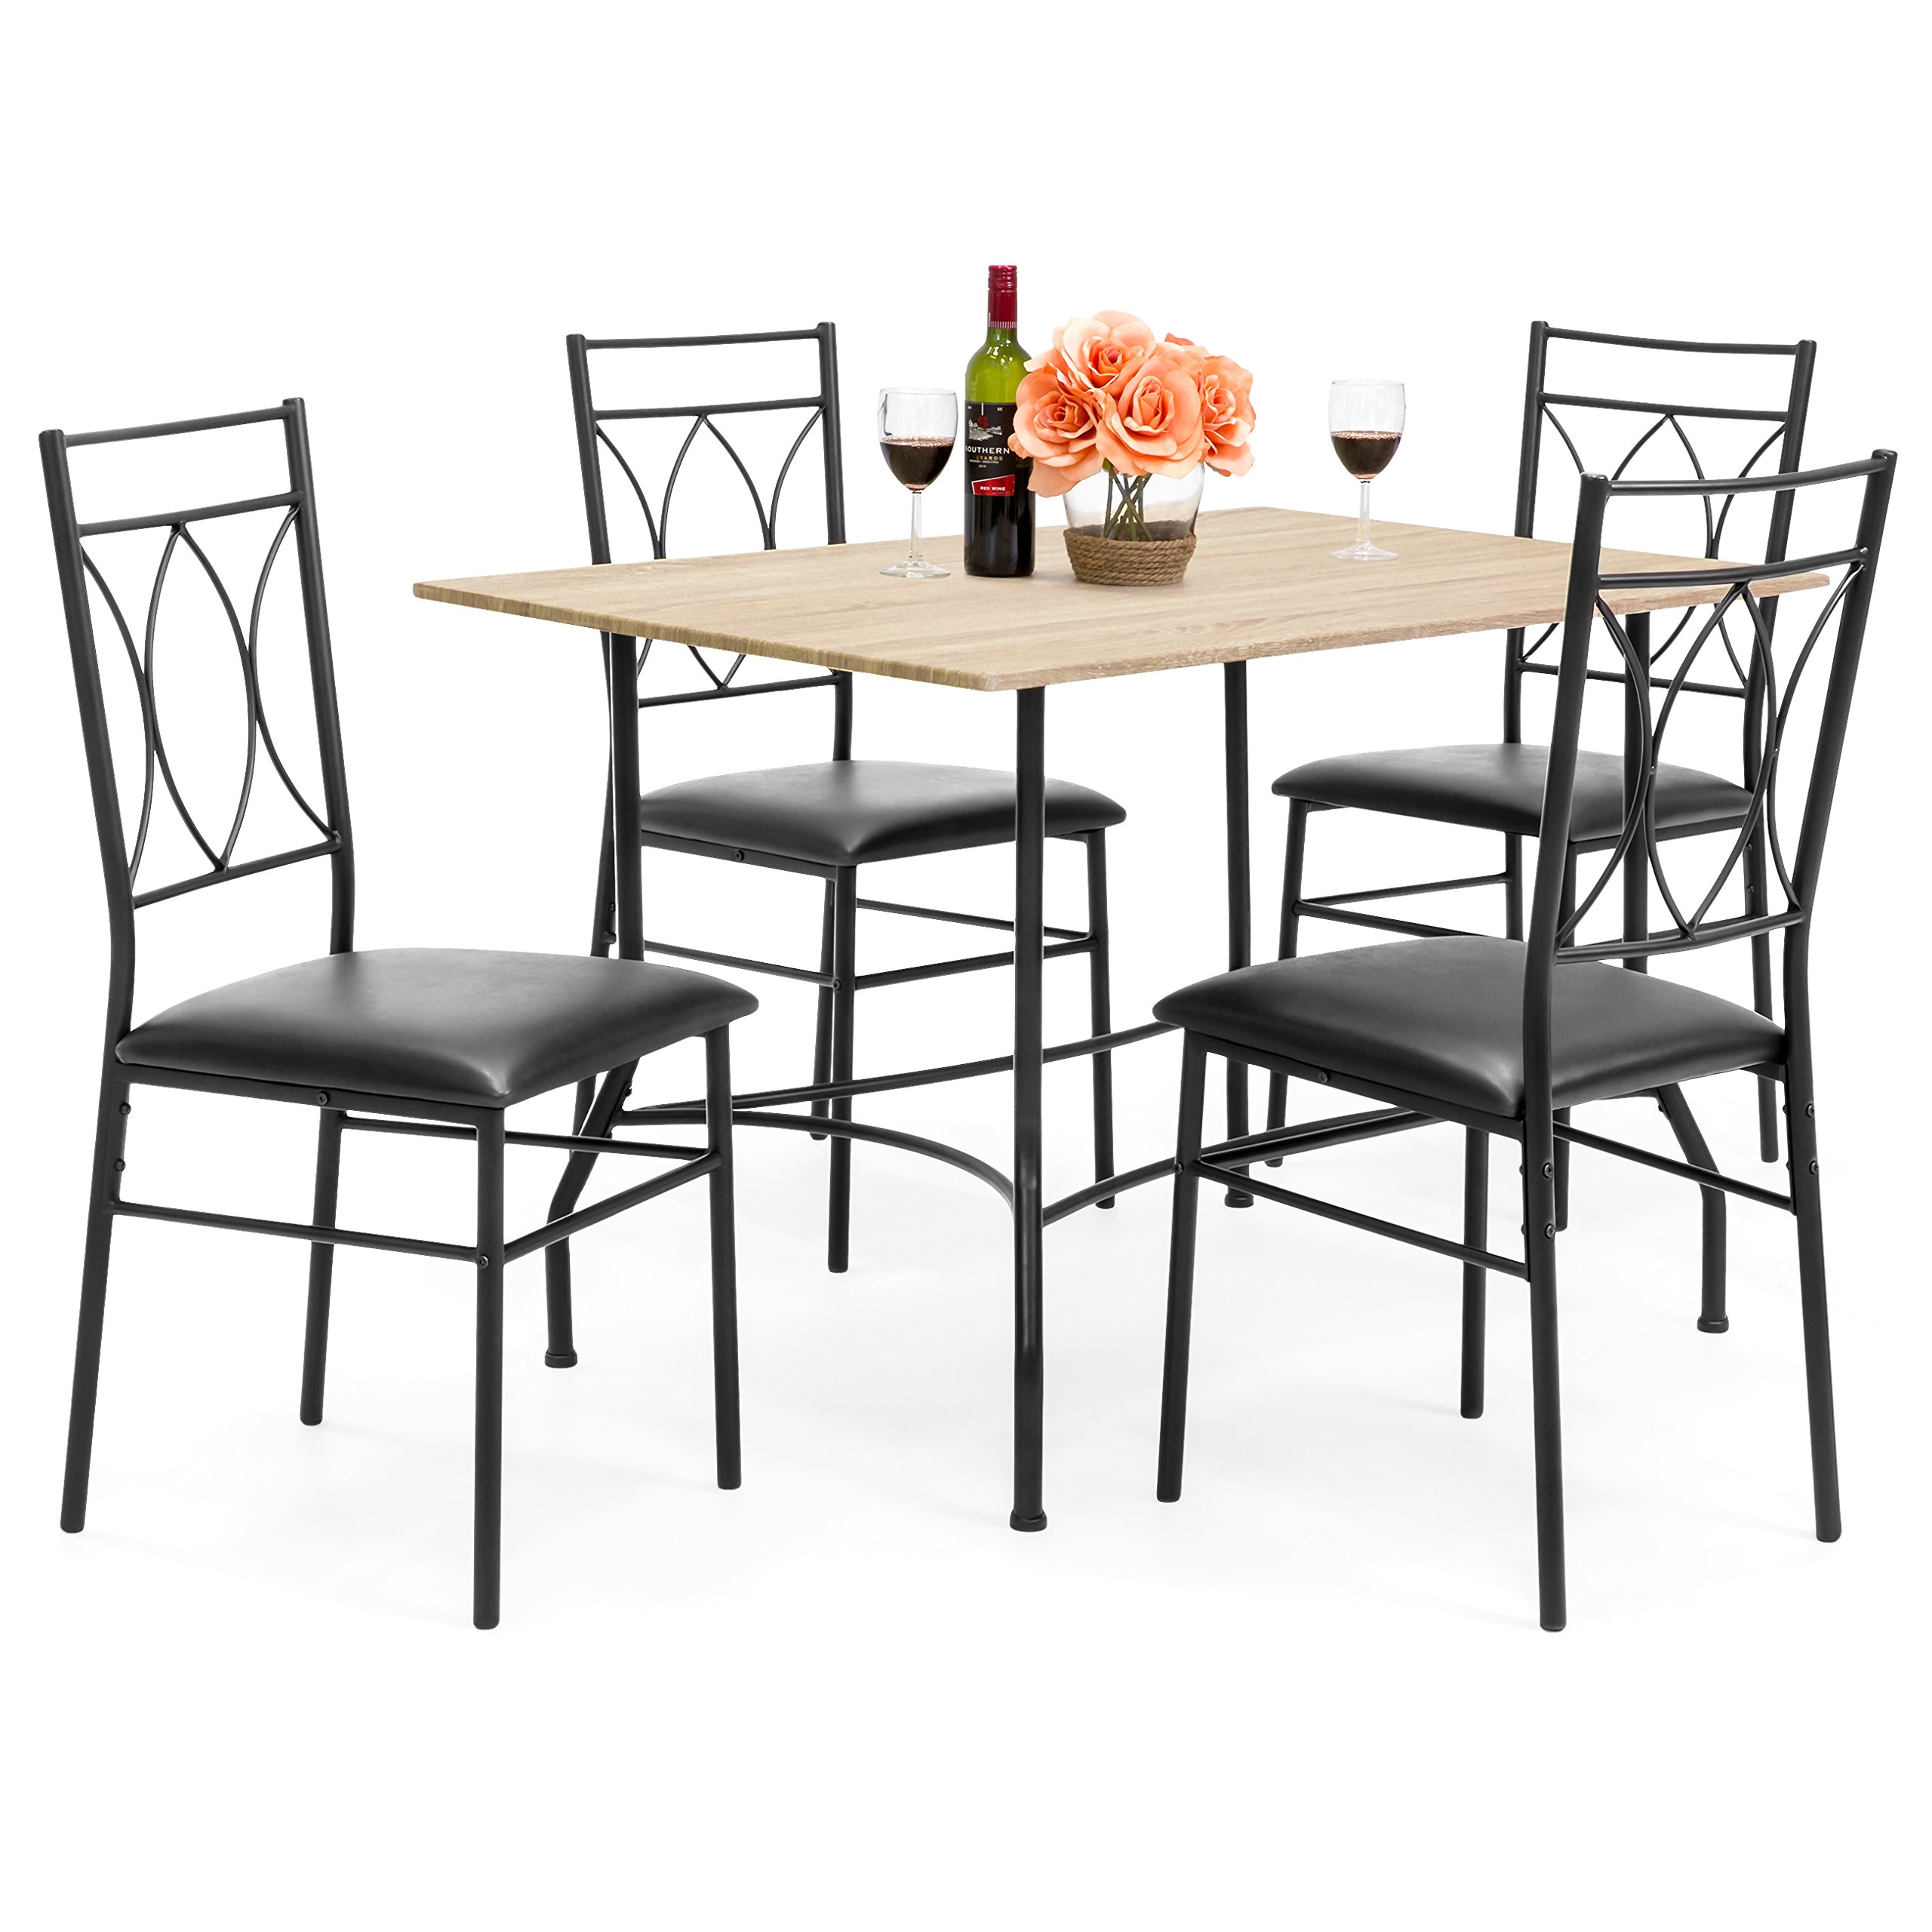 Best Choice Products 5-Piece Dining Set w/ Wood Table, Metal Chairs, Faux Leather Seats - Black